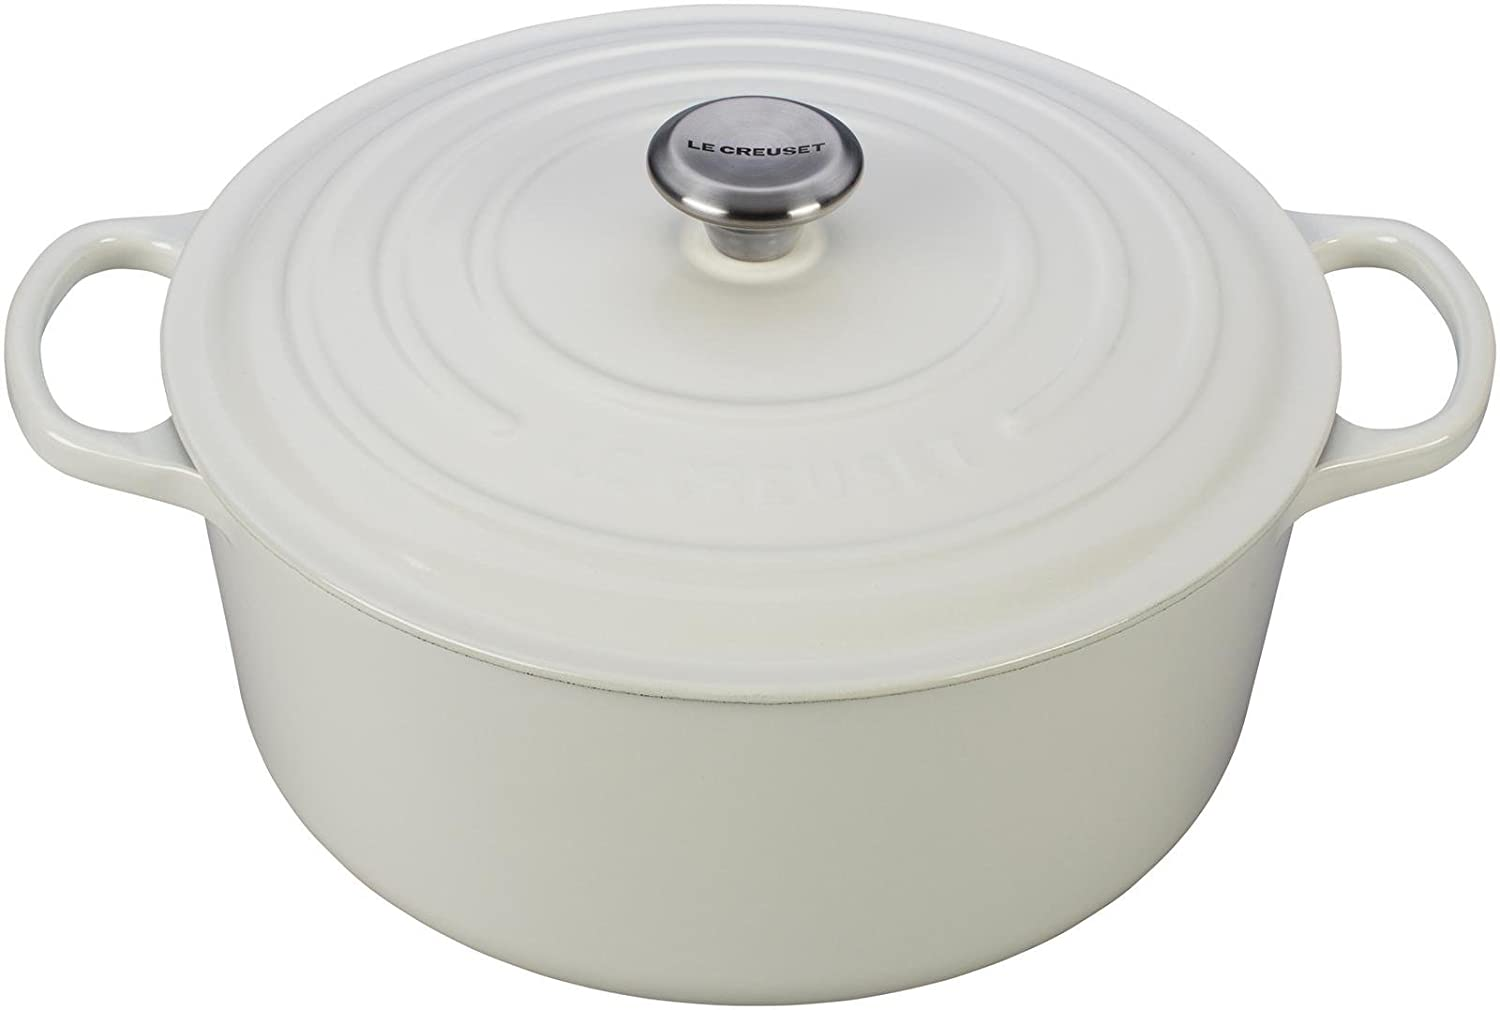 Le Creuset Signature Enameled Cast-Iron 9-Quart Round French (Dutch) Oven, White